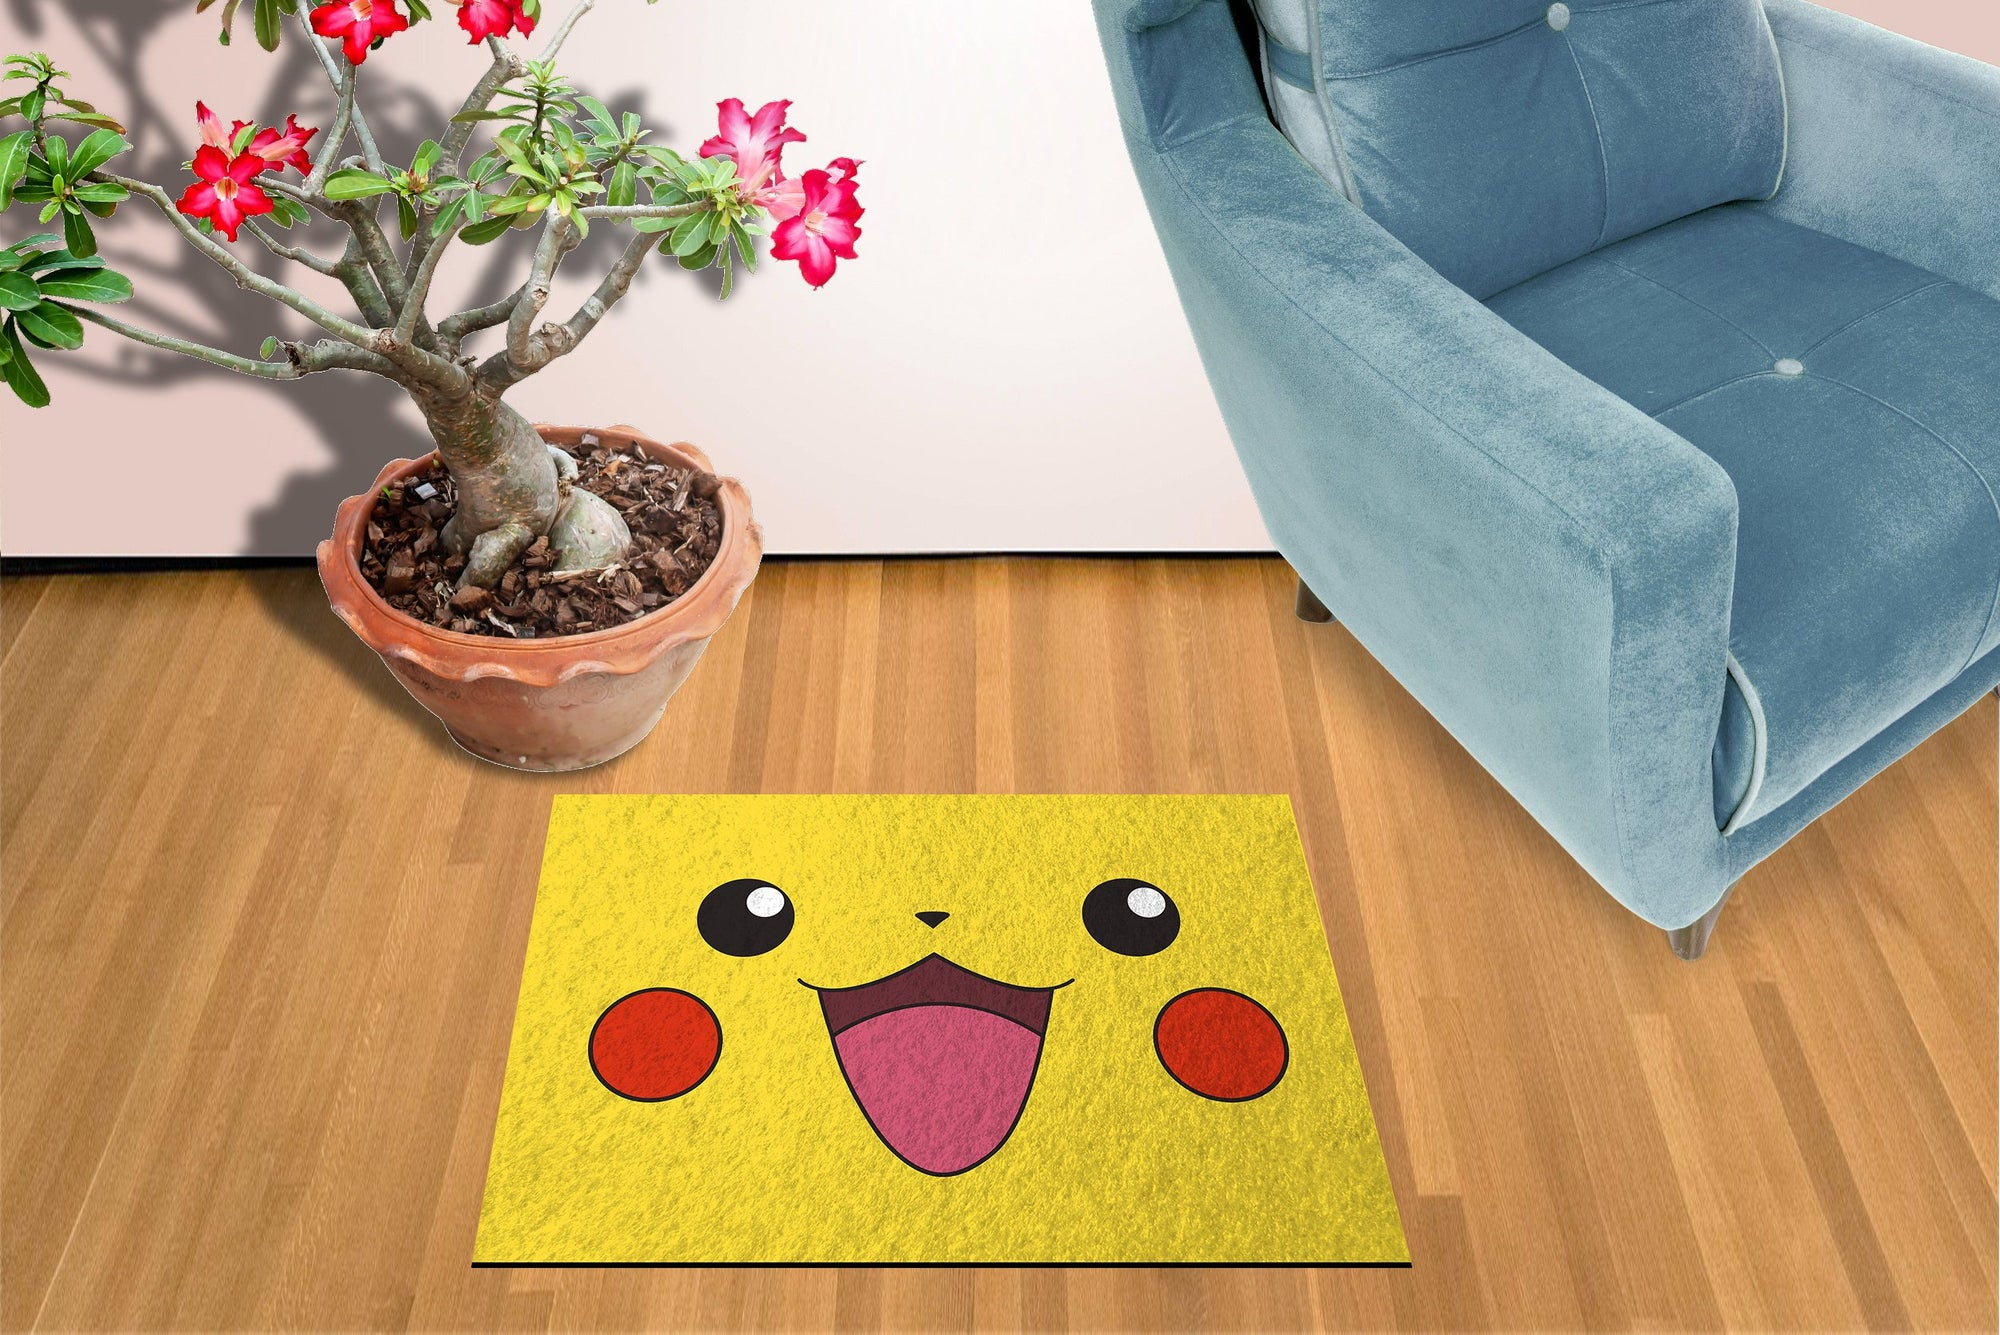 Pikachu Pokemon - Doormat Welcome Floormat